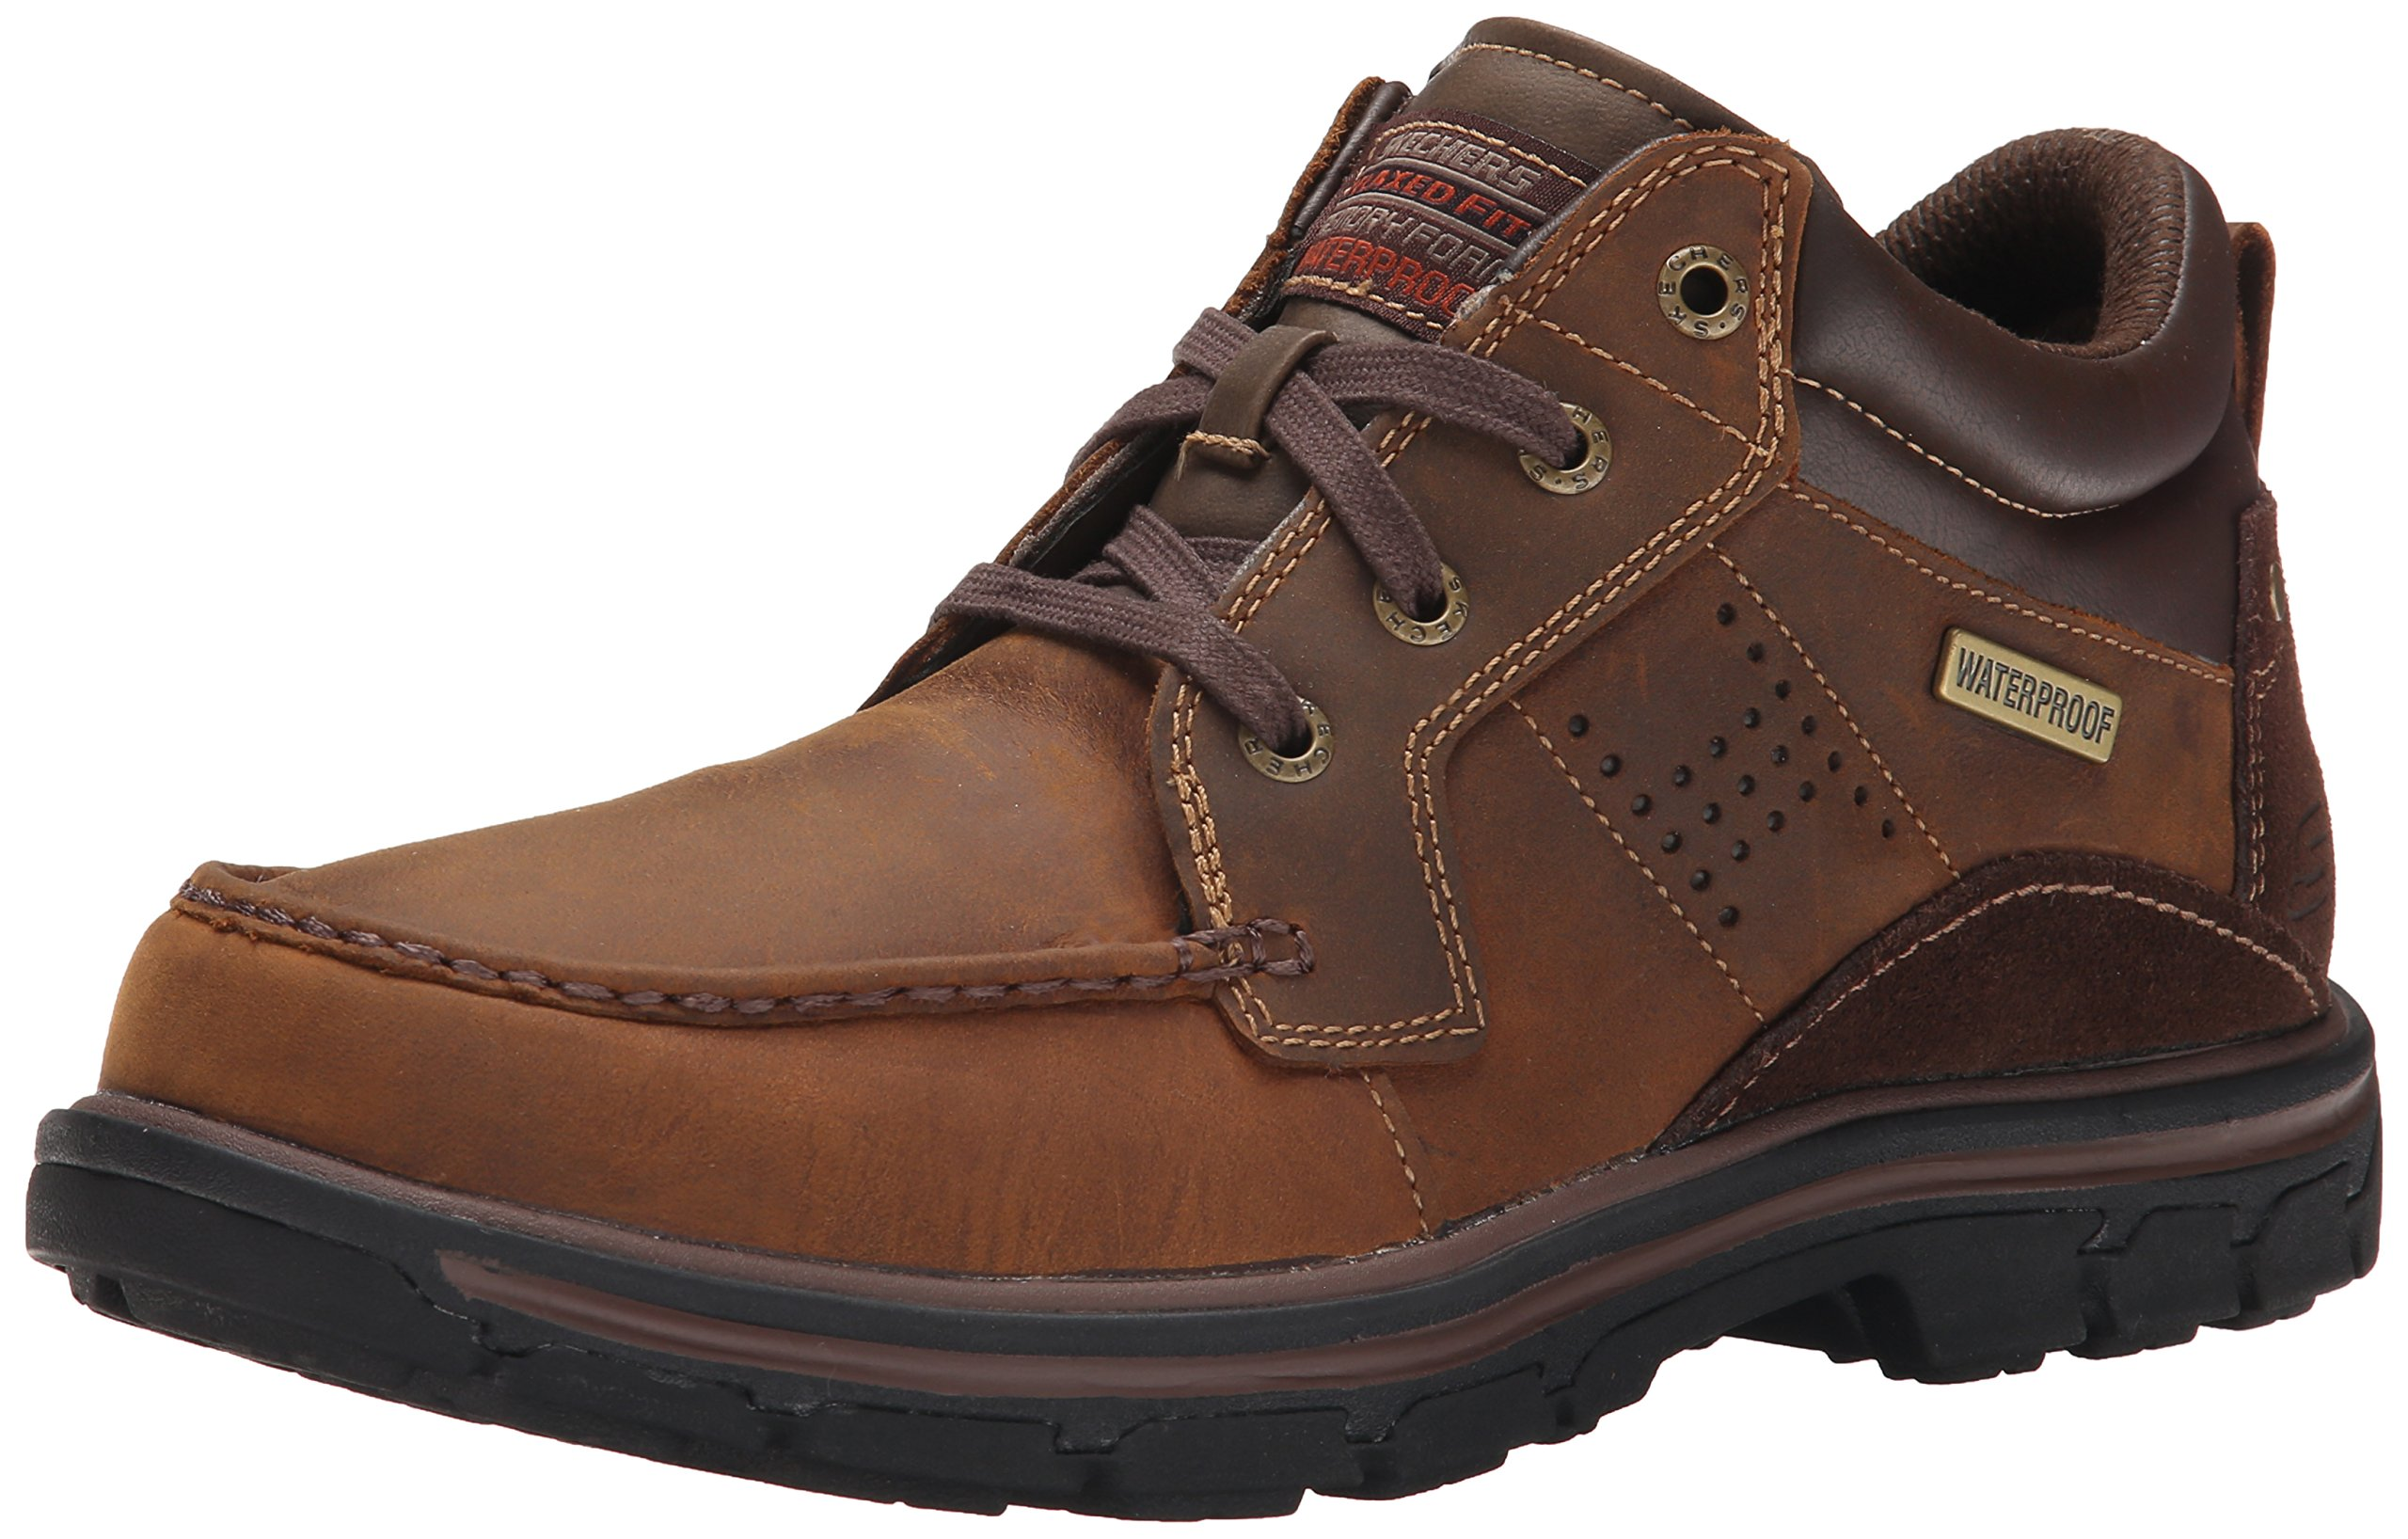 Skechers USA Men's Segment Melego Ankle Bootie, Dark Brown, 13 2W US by Skechers